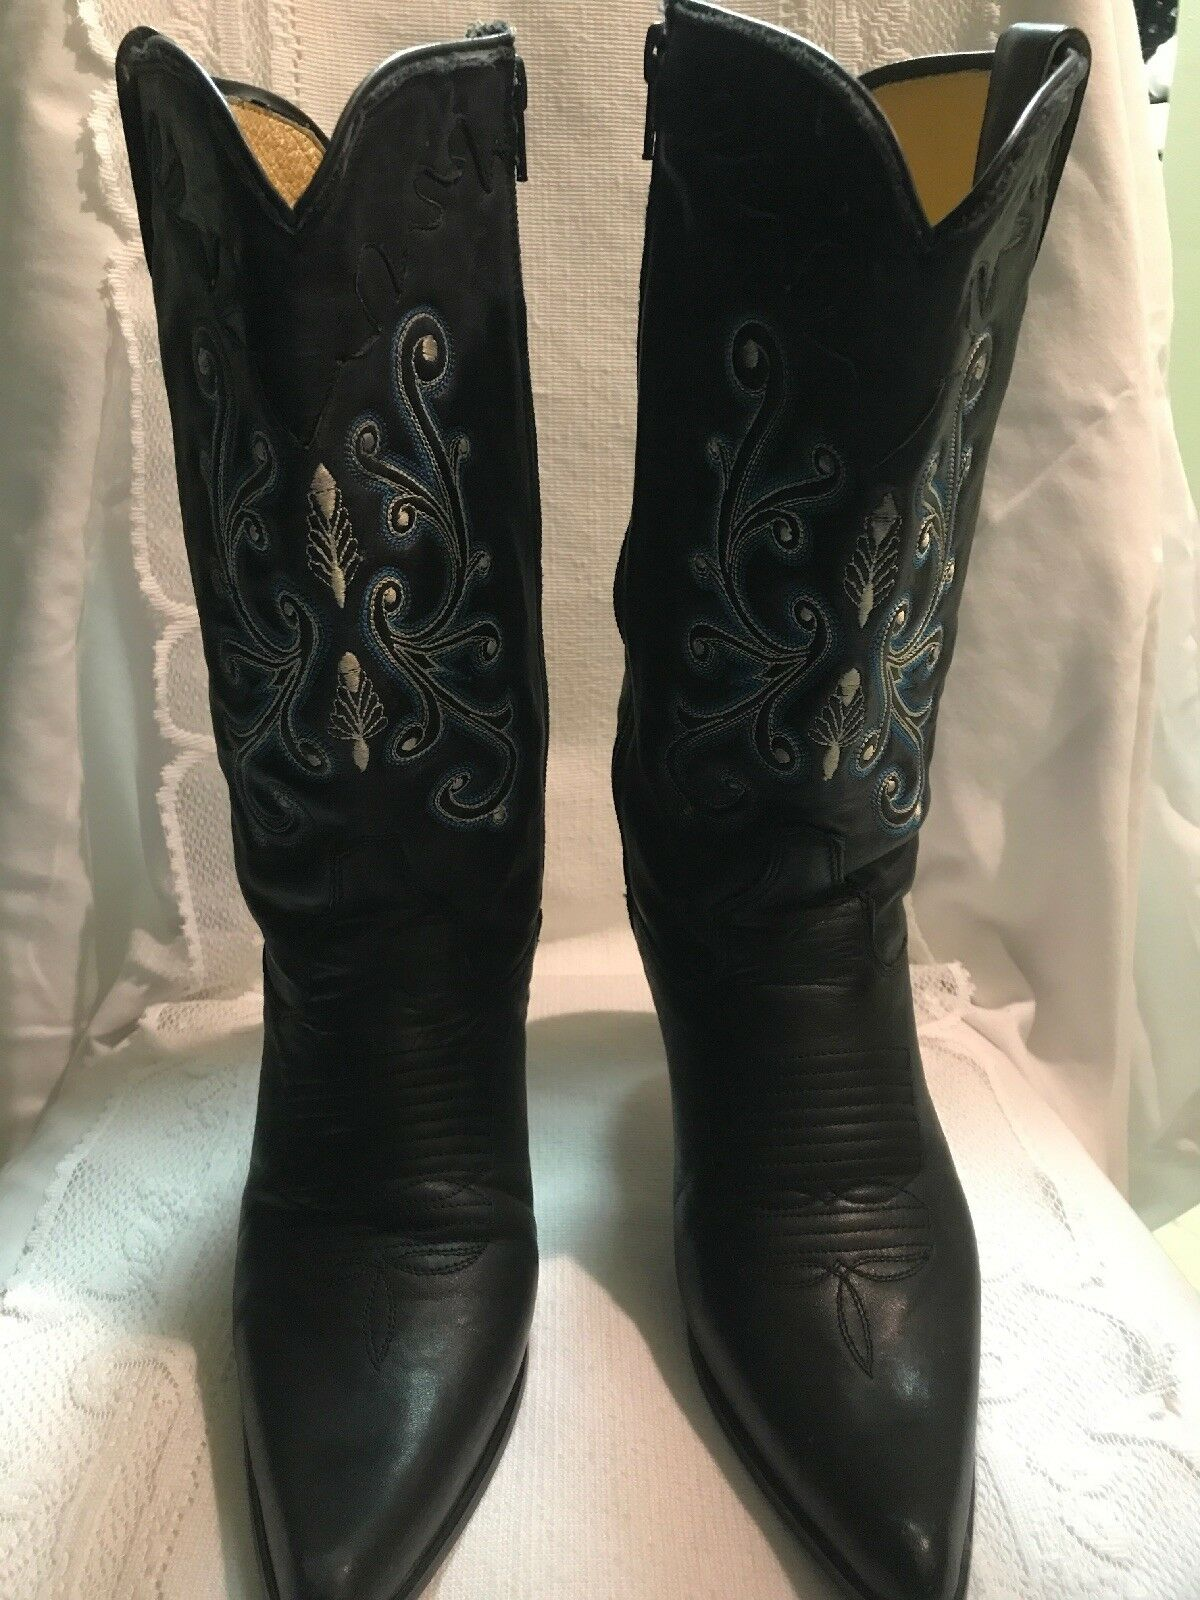 Reyme Reyme Reyme Women's Cowboy boots   US Size 7.5 a16340